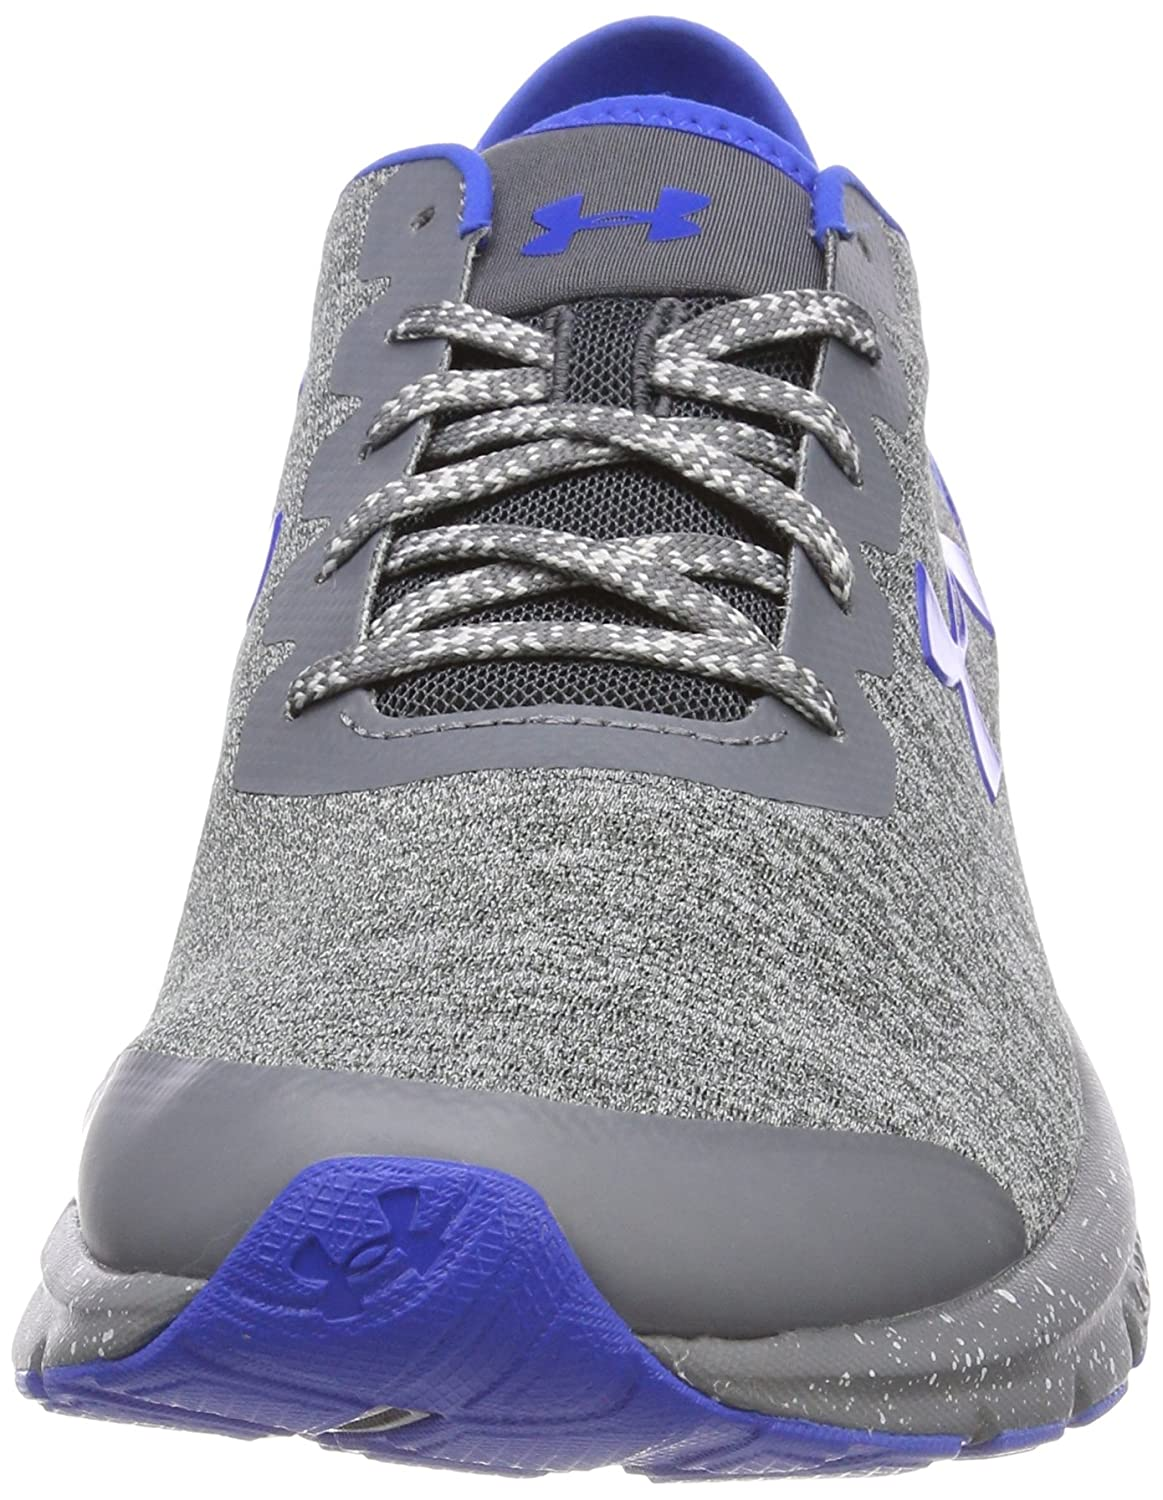 4022b2a63c891 Under Armour Charged Escape Running Shoes - SS18-10 - Blue